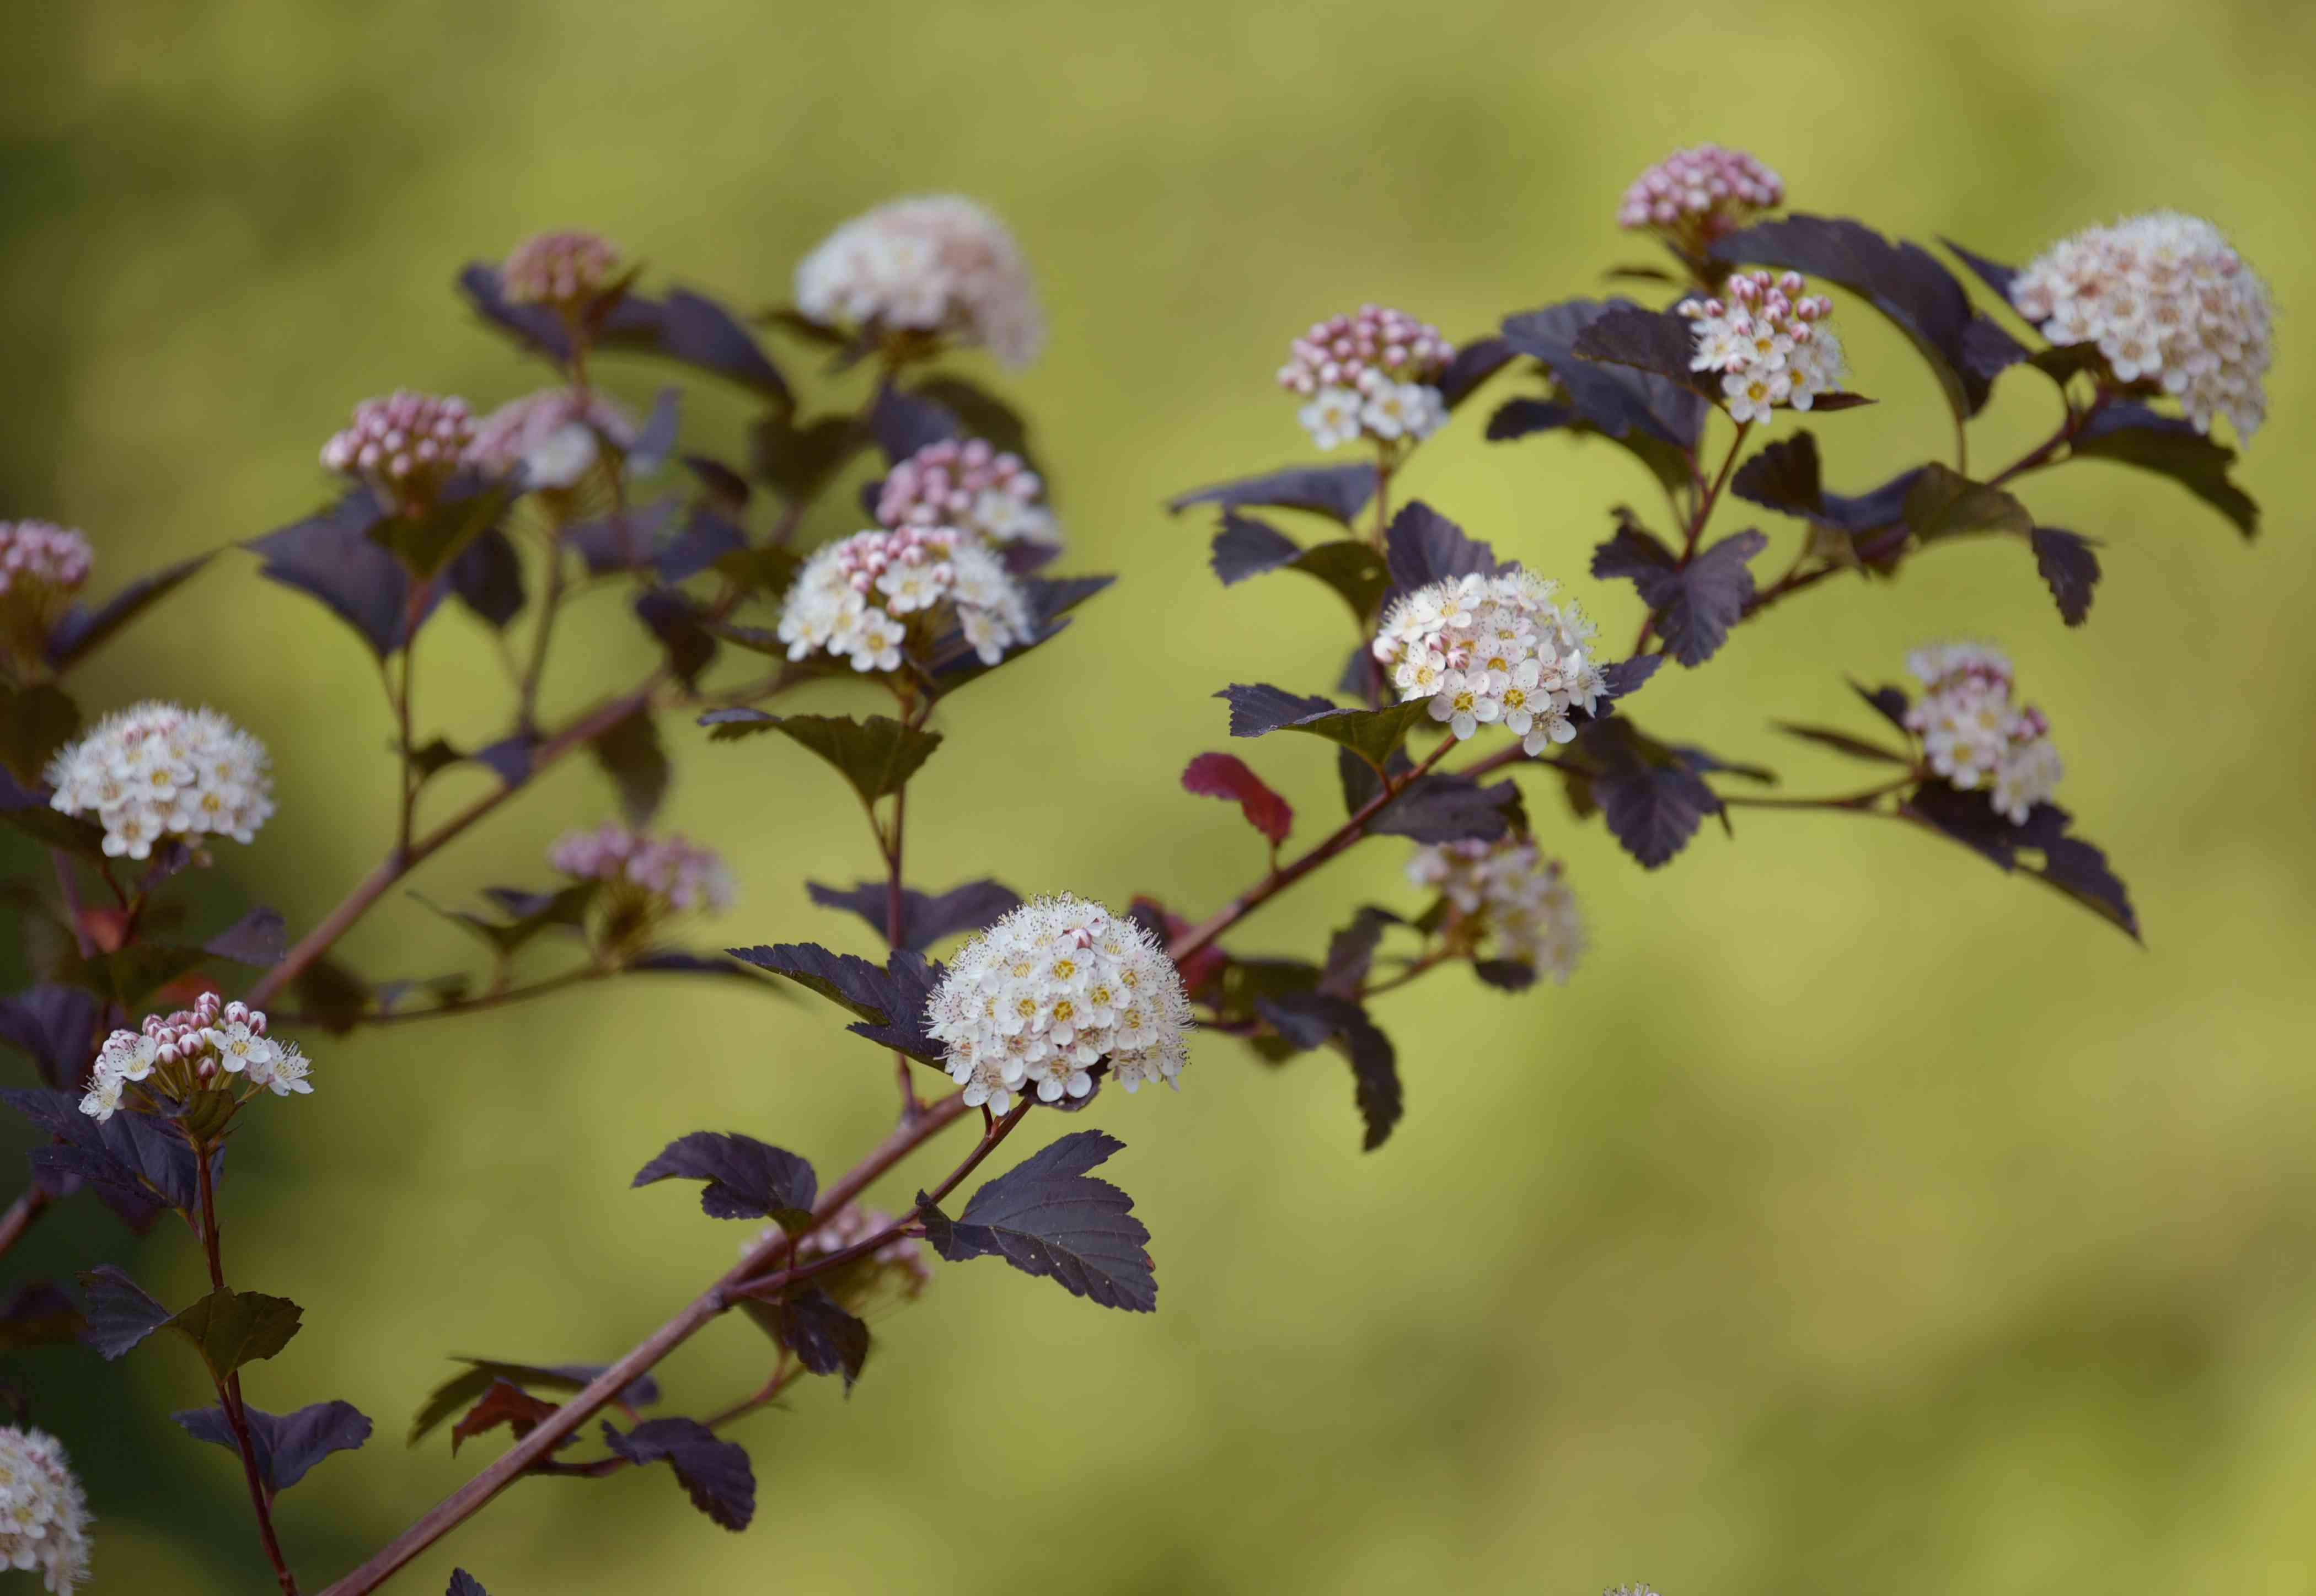 Diablo ninebark branches with dark purple leaves and small white and pink flower clusters